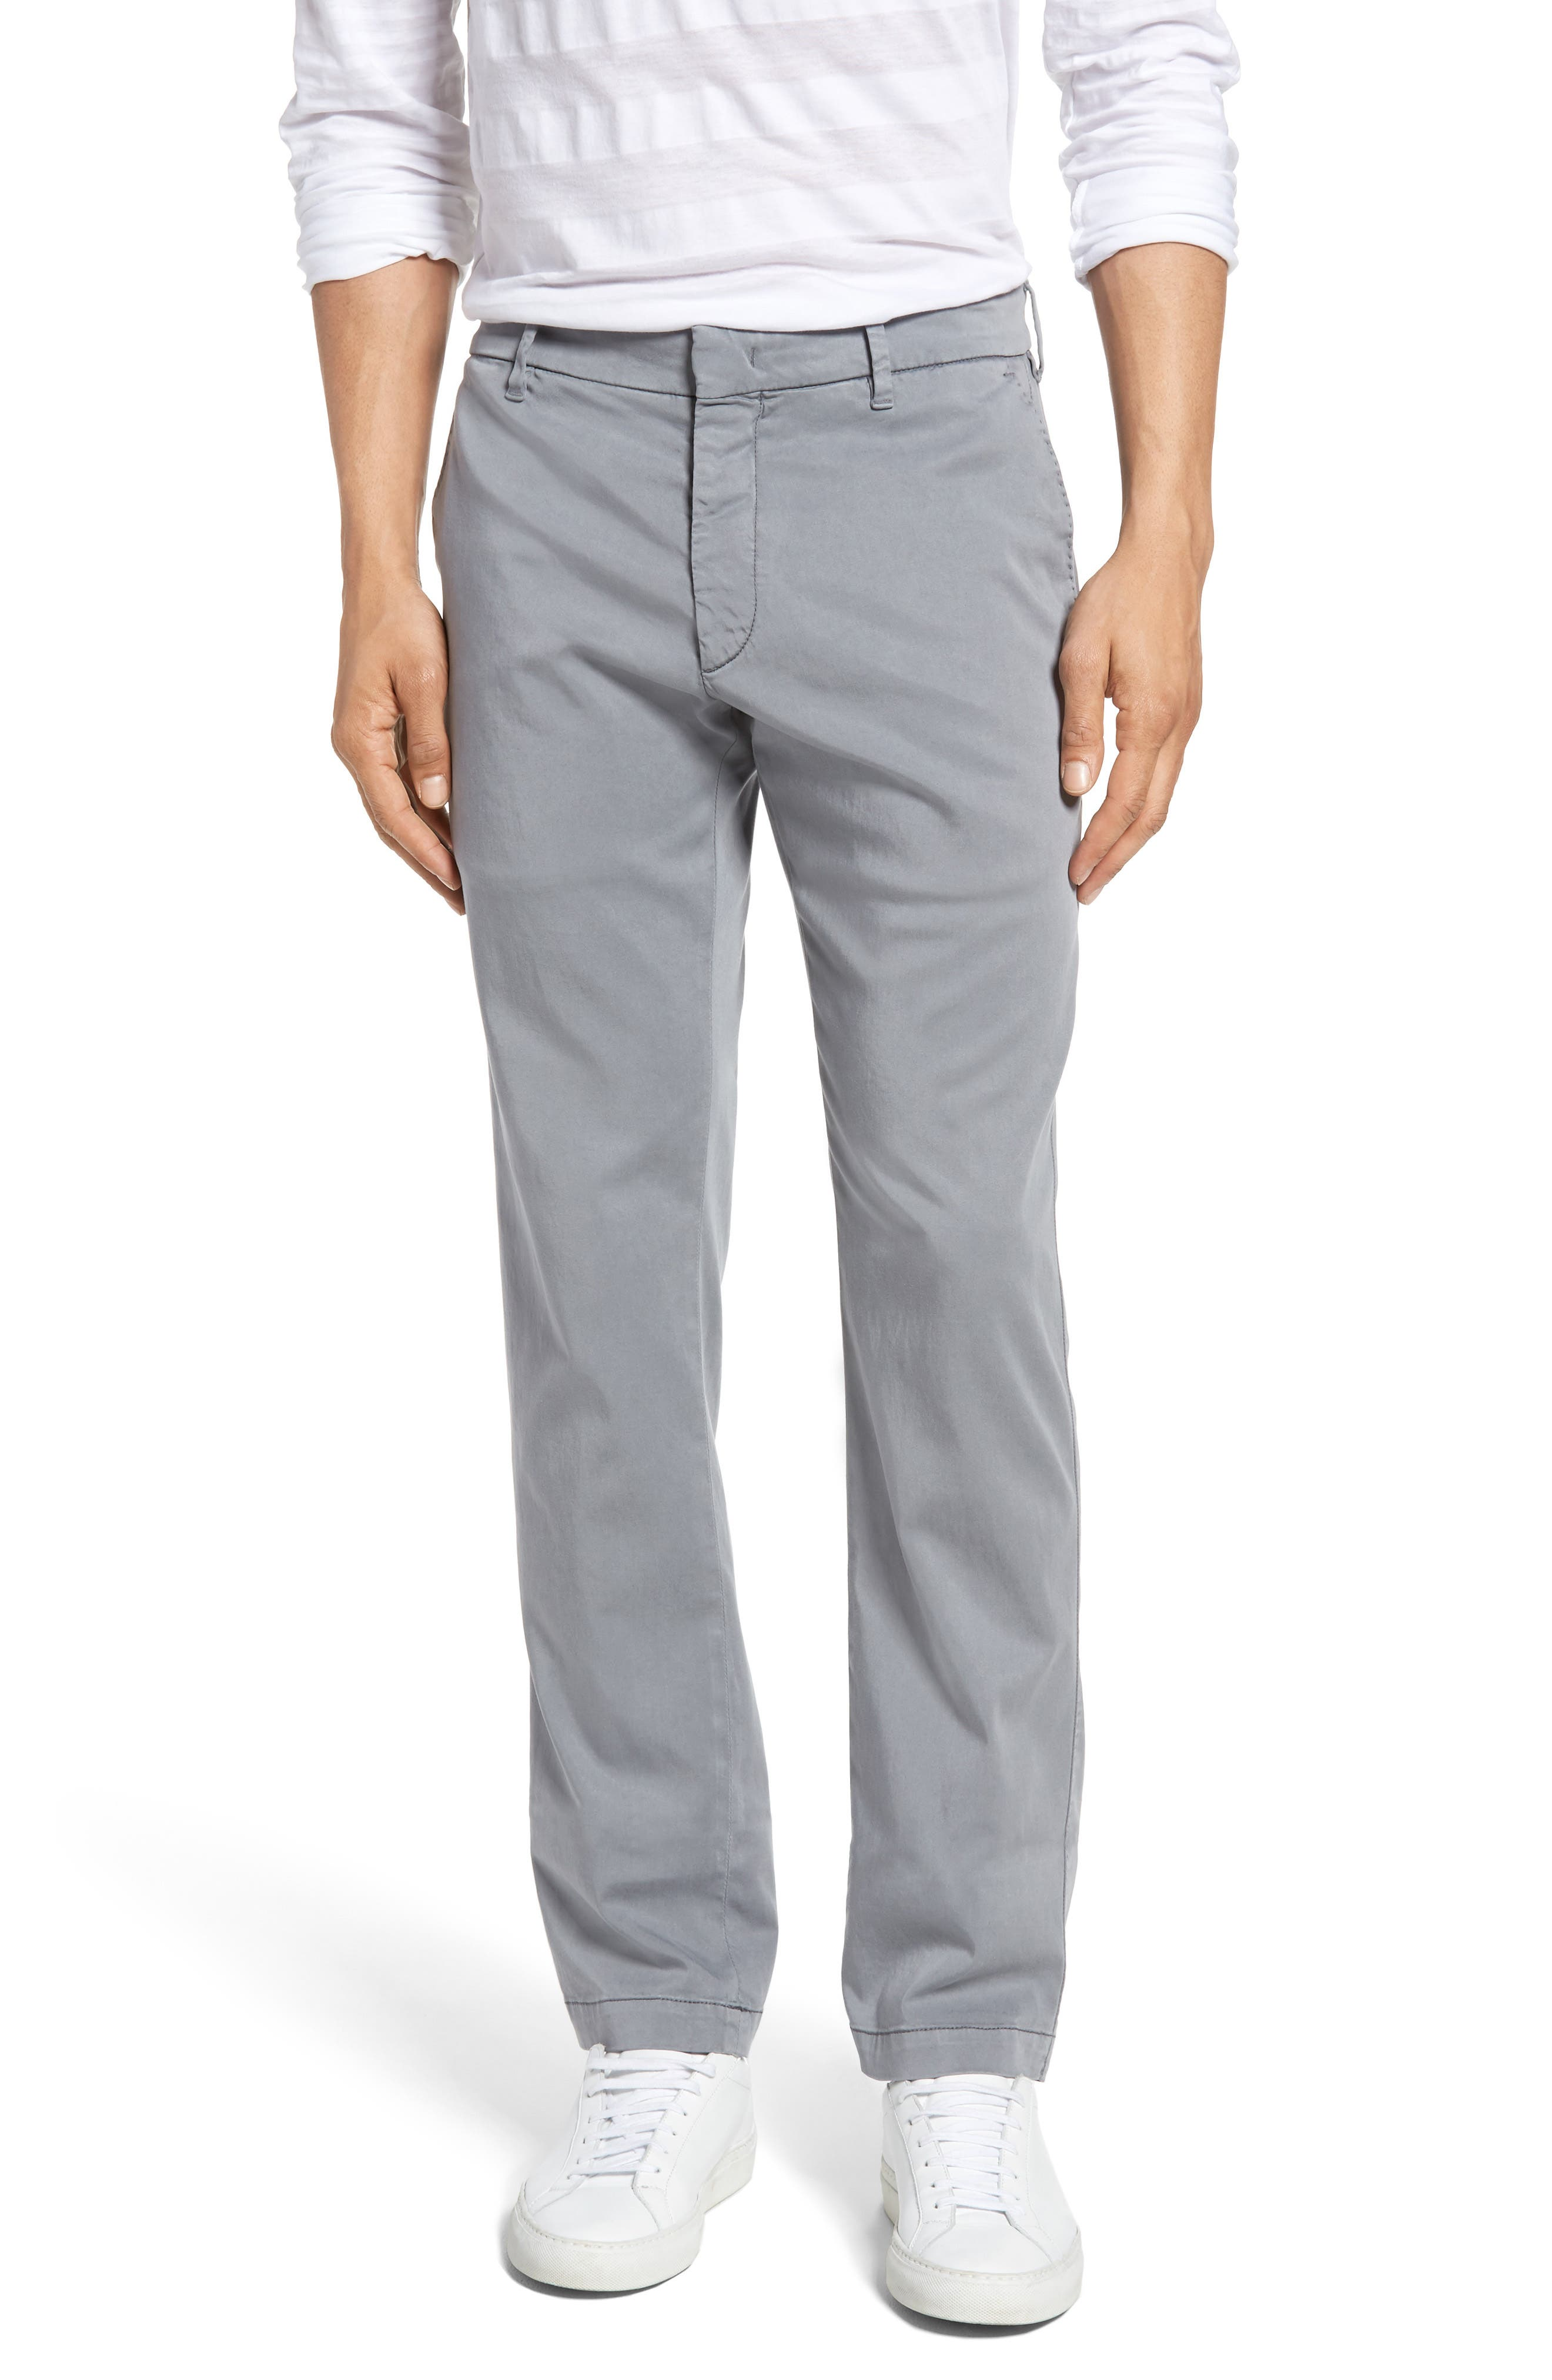 Aster Straight Leg Trousers,                             Main thumbnail 1, color,                             Grey